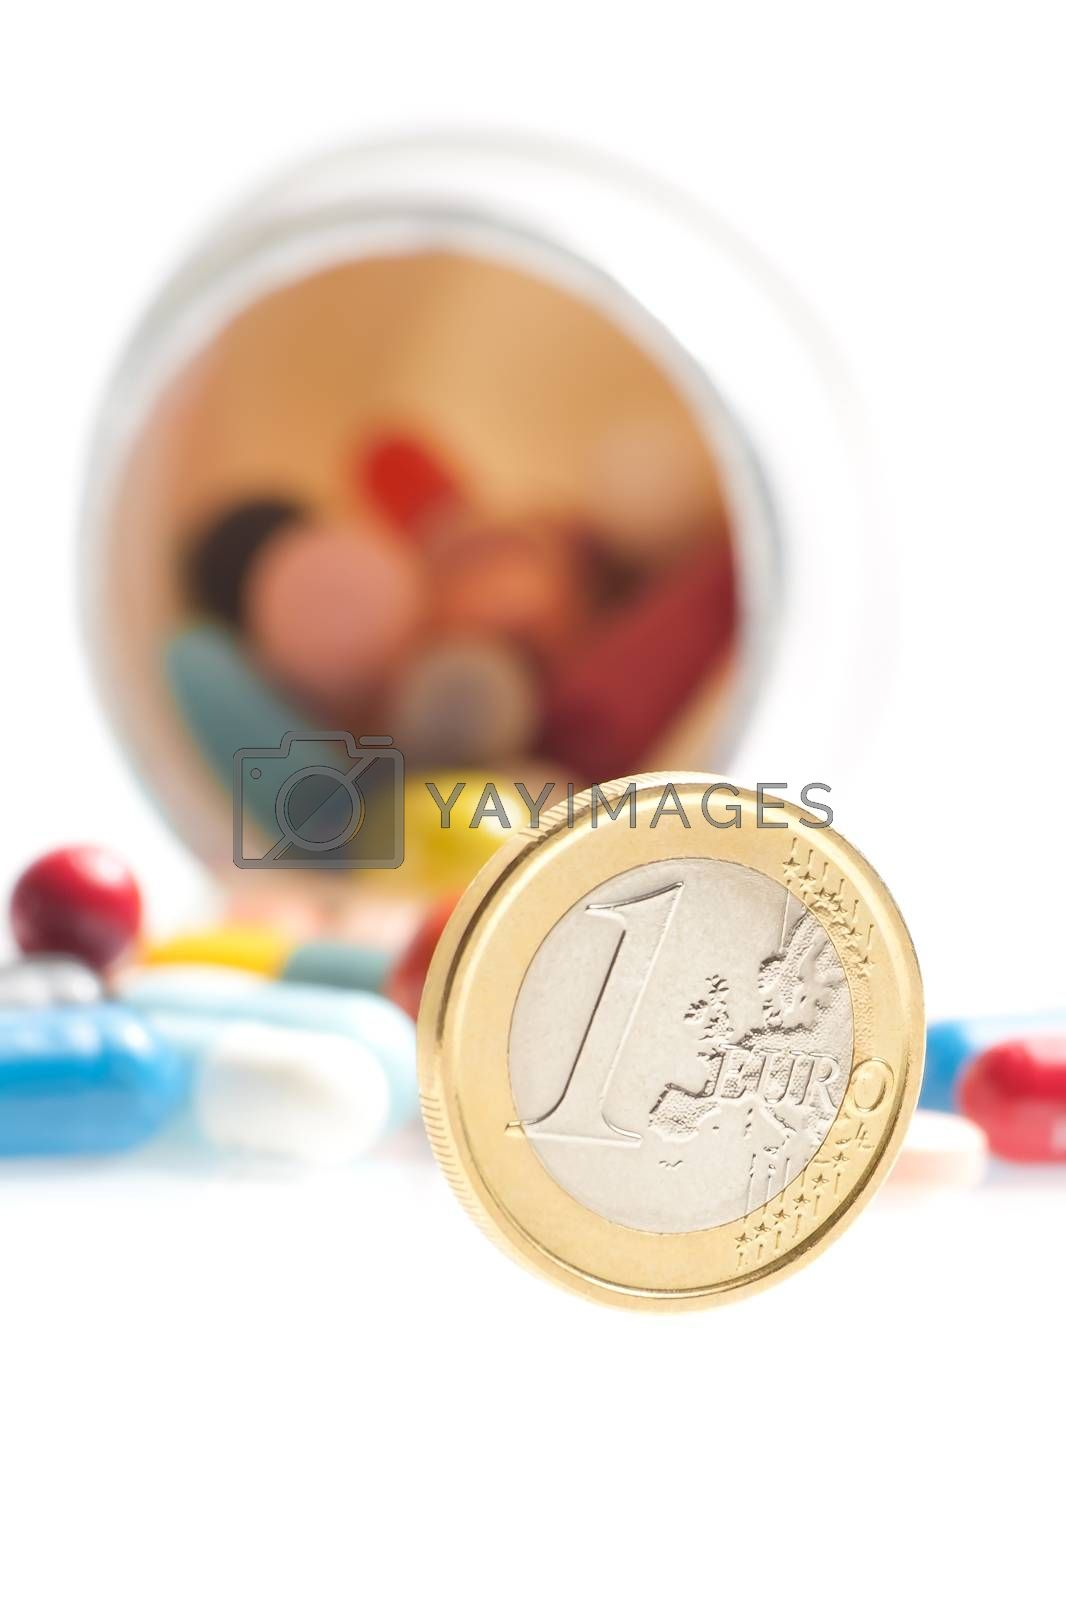 euro coin in front of white container on white background